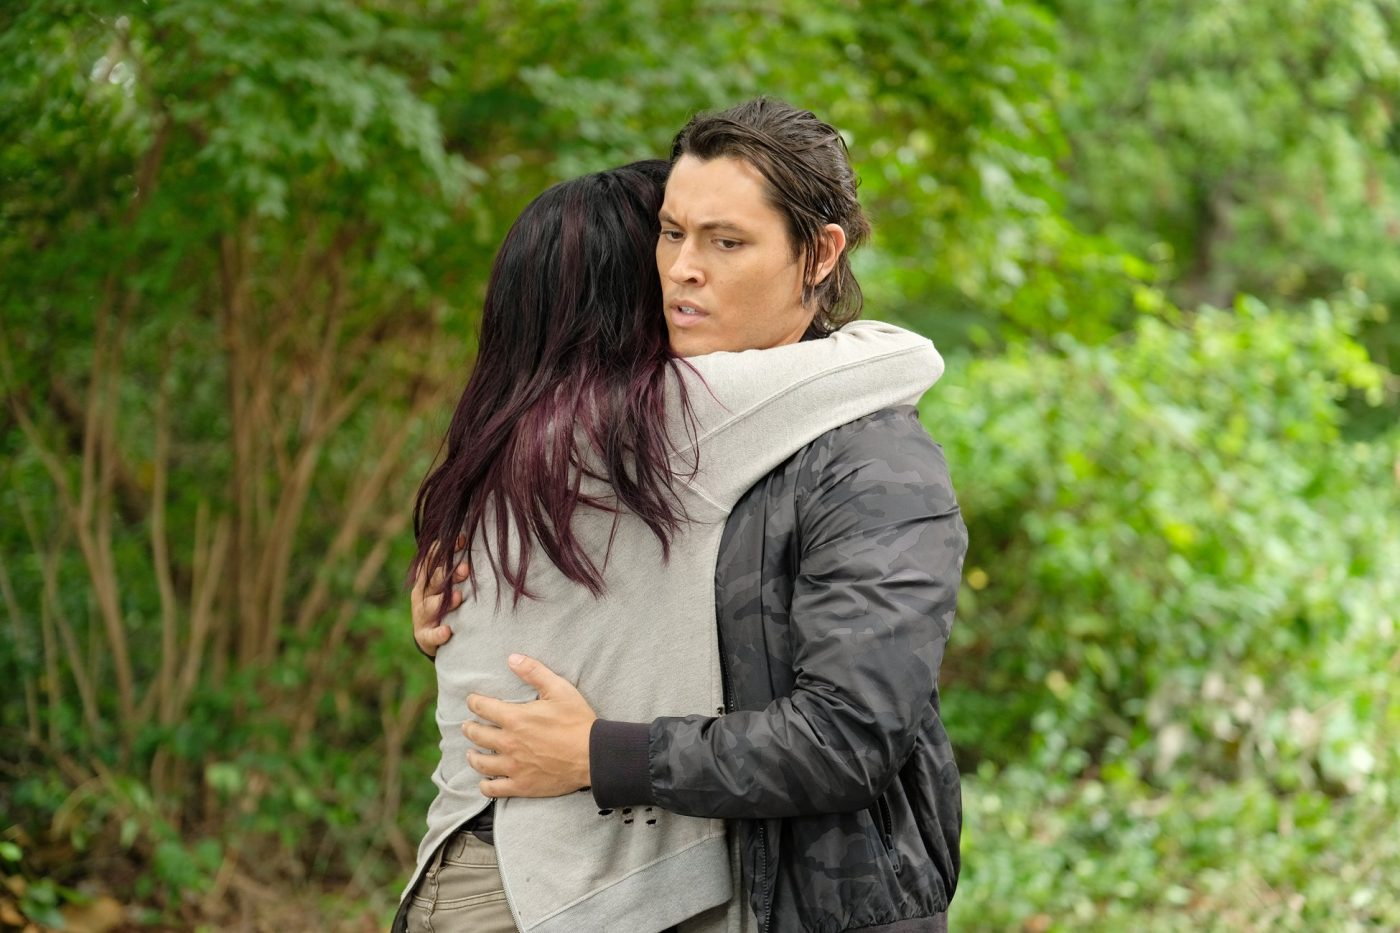 The Gifted: Season 1, Episode 3: eXodus - Young mutants in love